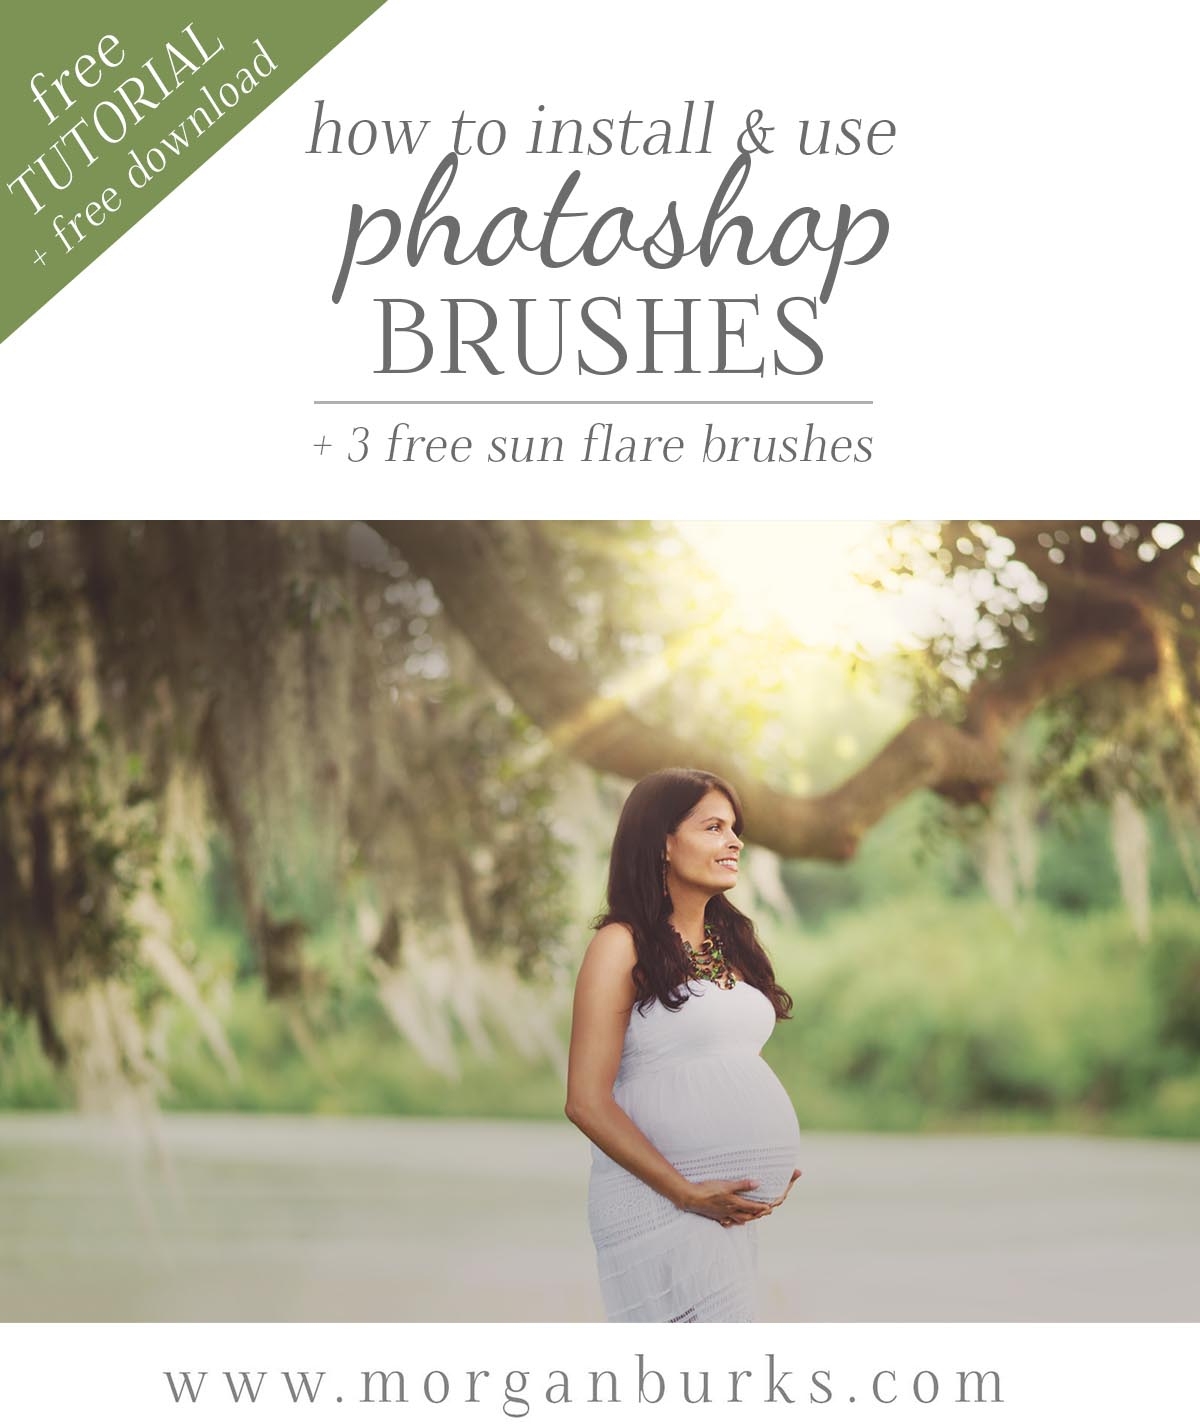 How to install and use Photoshop Brushes. Plus, download 3 free flare brushes to try out on your own photos!